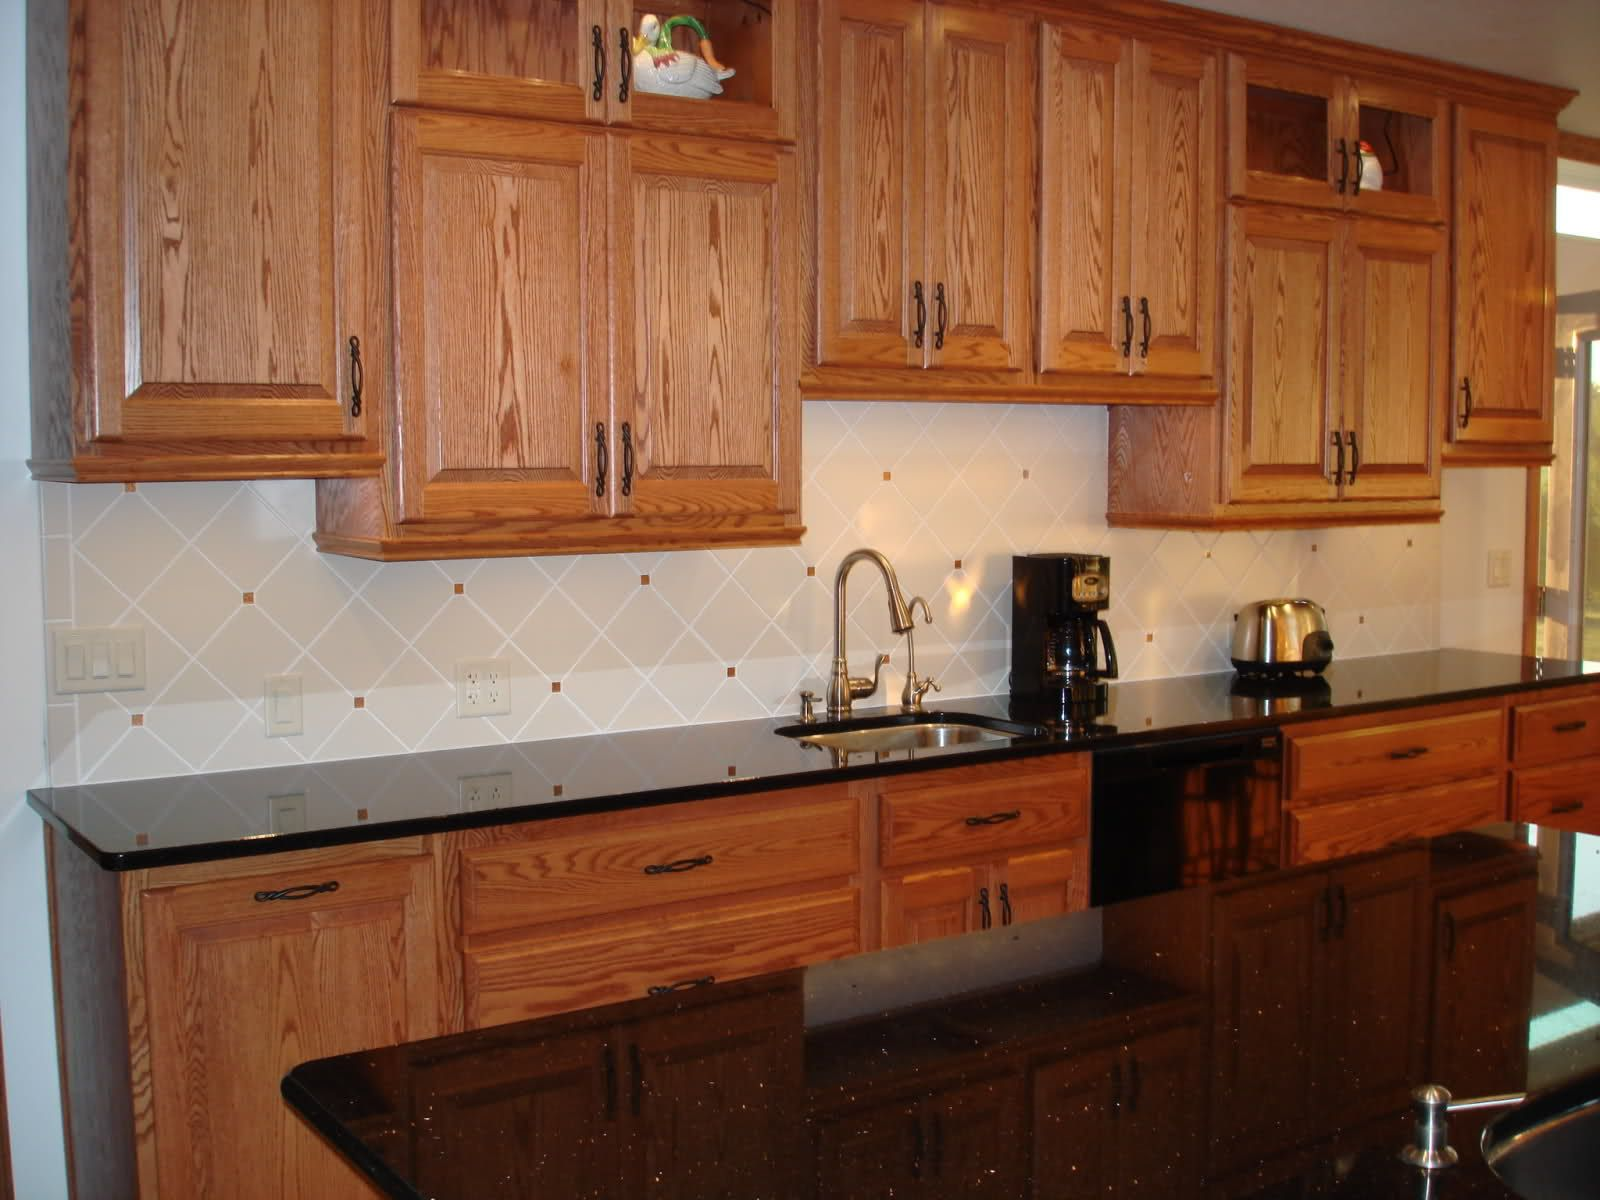 - Backsplash Pictures With Oak Cabinets And Uba Tuba Granite RE